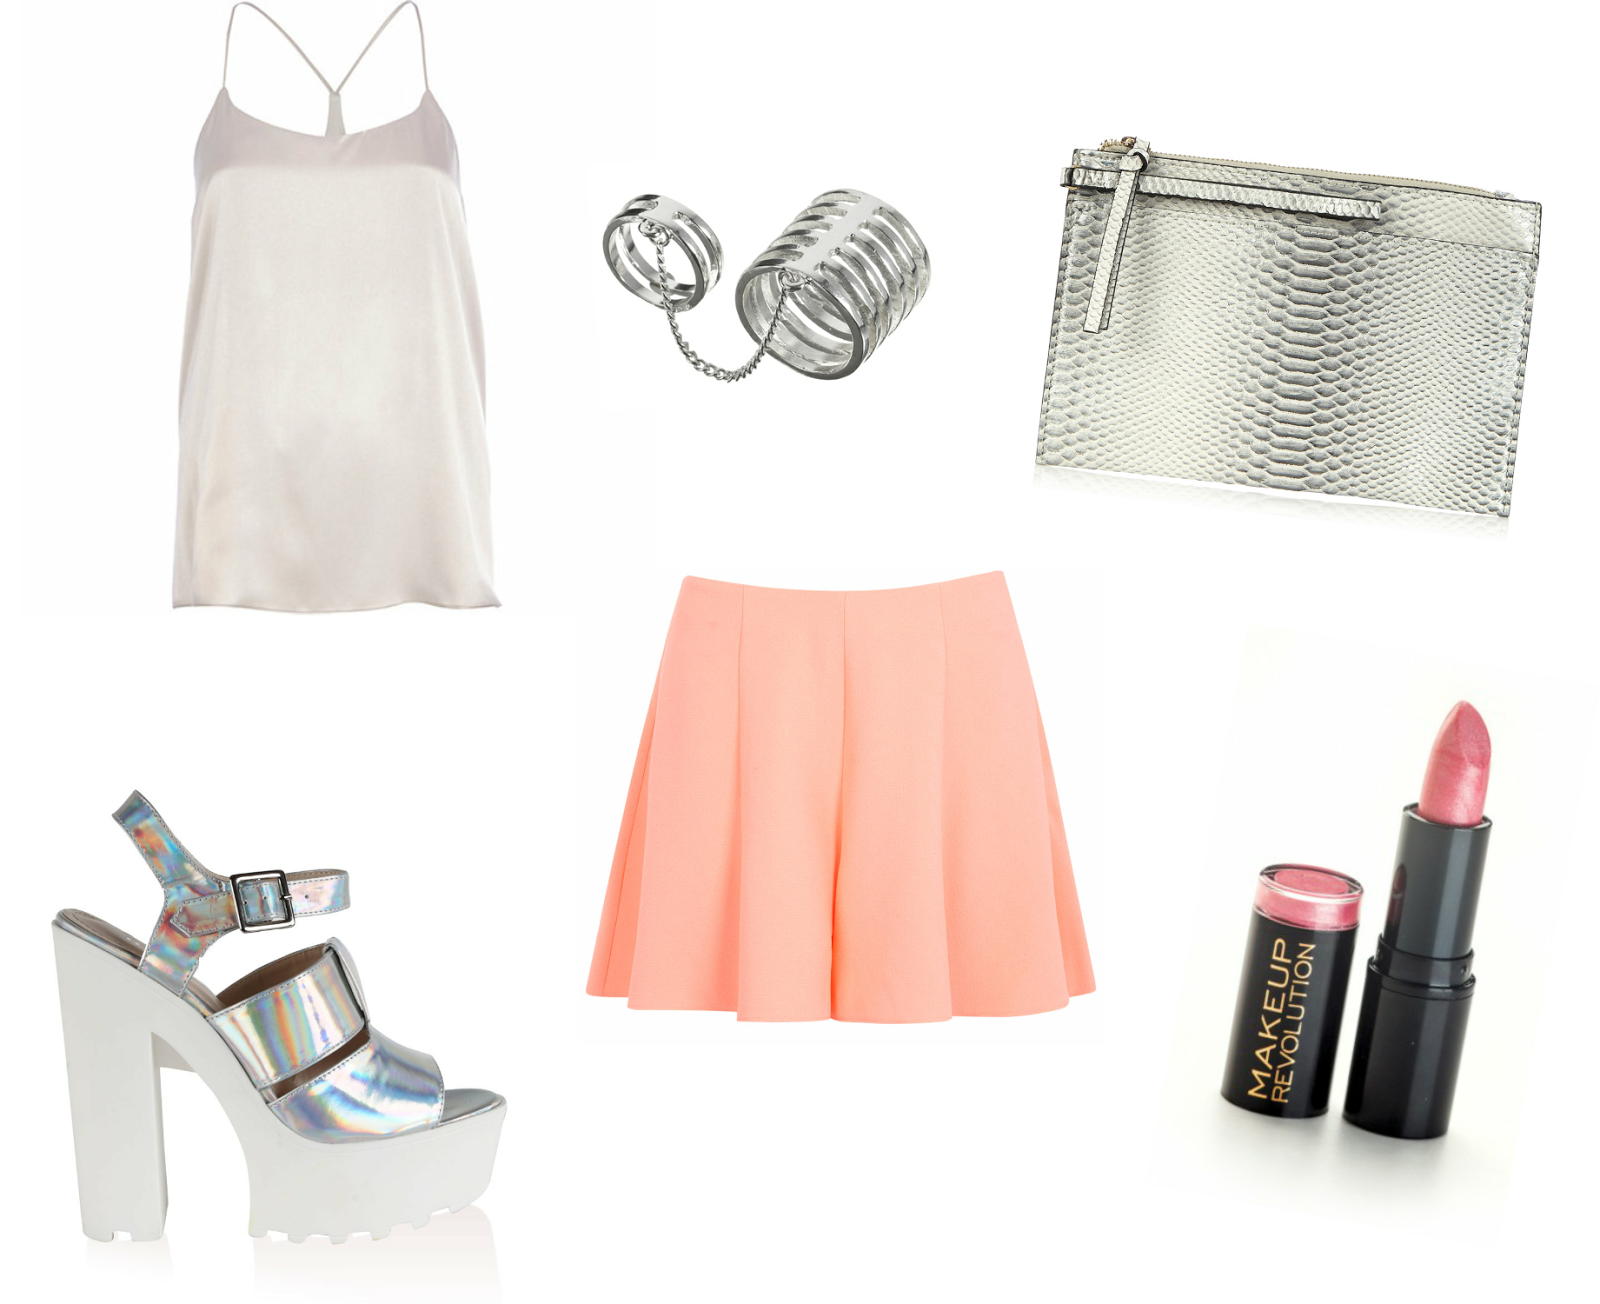 silver, River Island, Miss Selfridge, coral, ASOS, rings, link ring, cleated heels, cleated sole, shoes, holographic, Makeup Revolution, pink, lipstick, night out